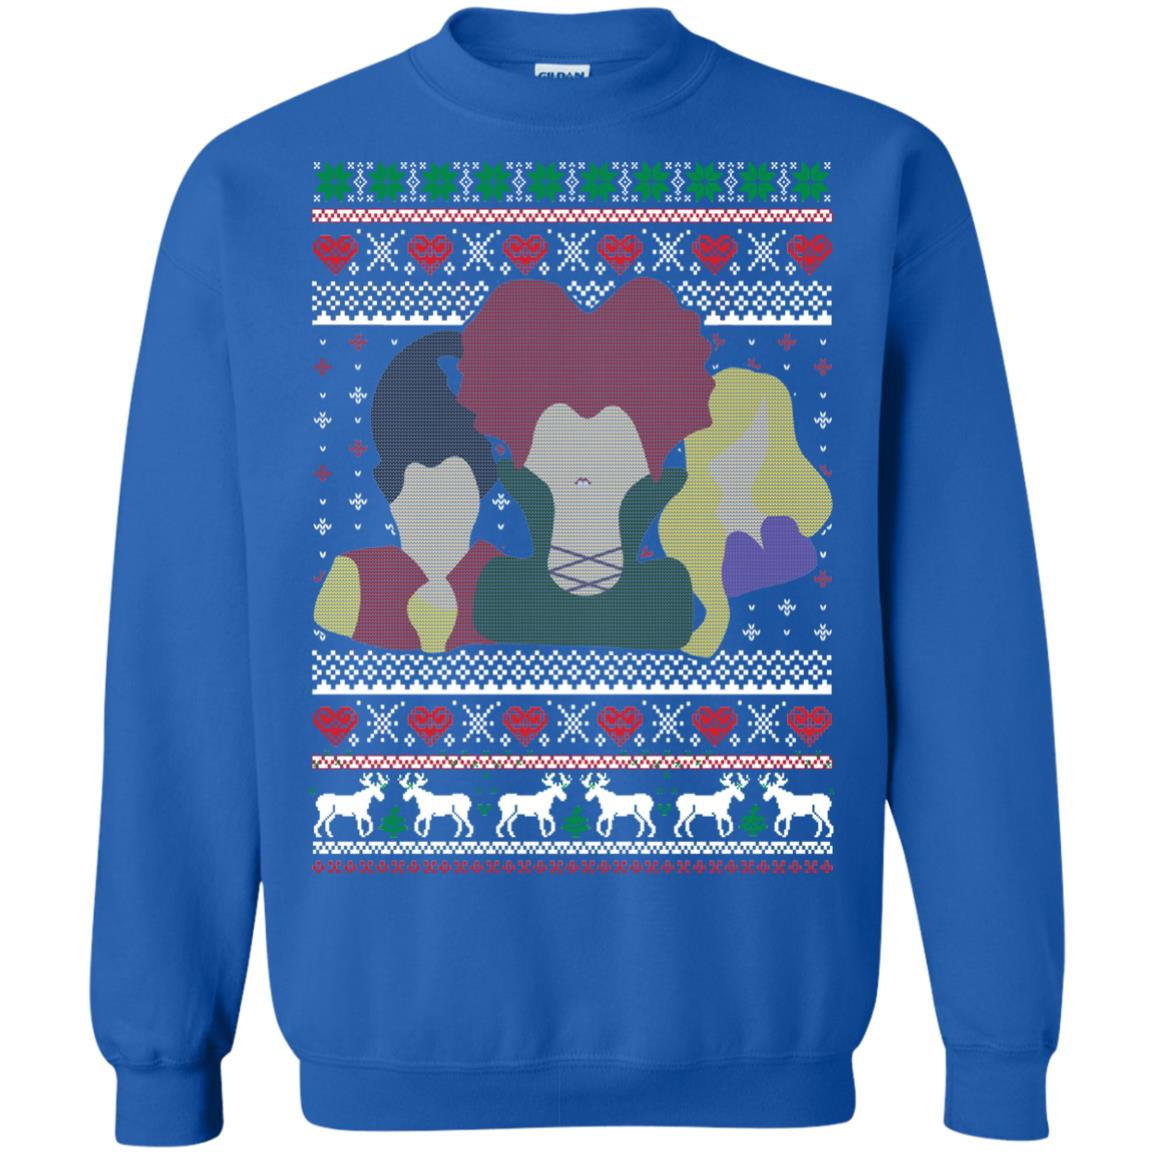 image 646px Hocus Pocus Ugly Christmas Sweater Shirt